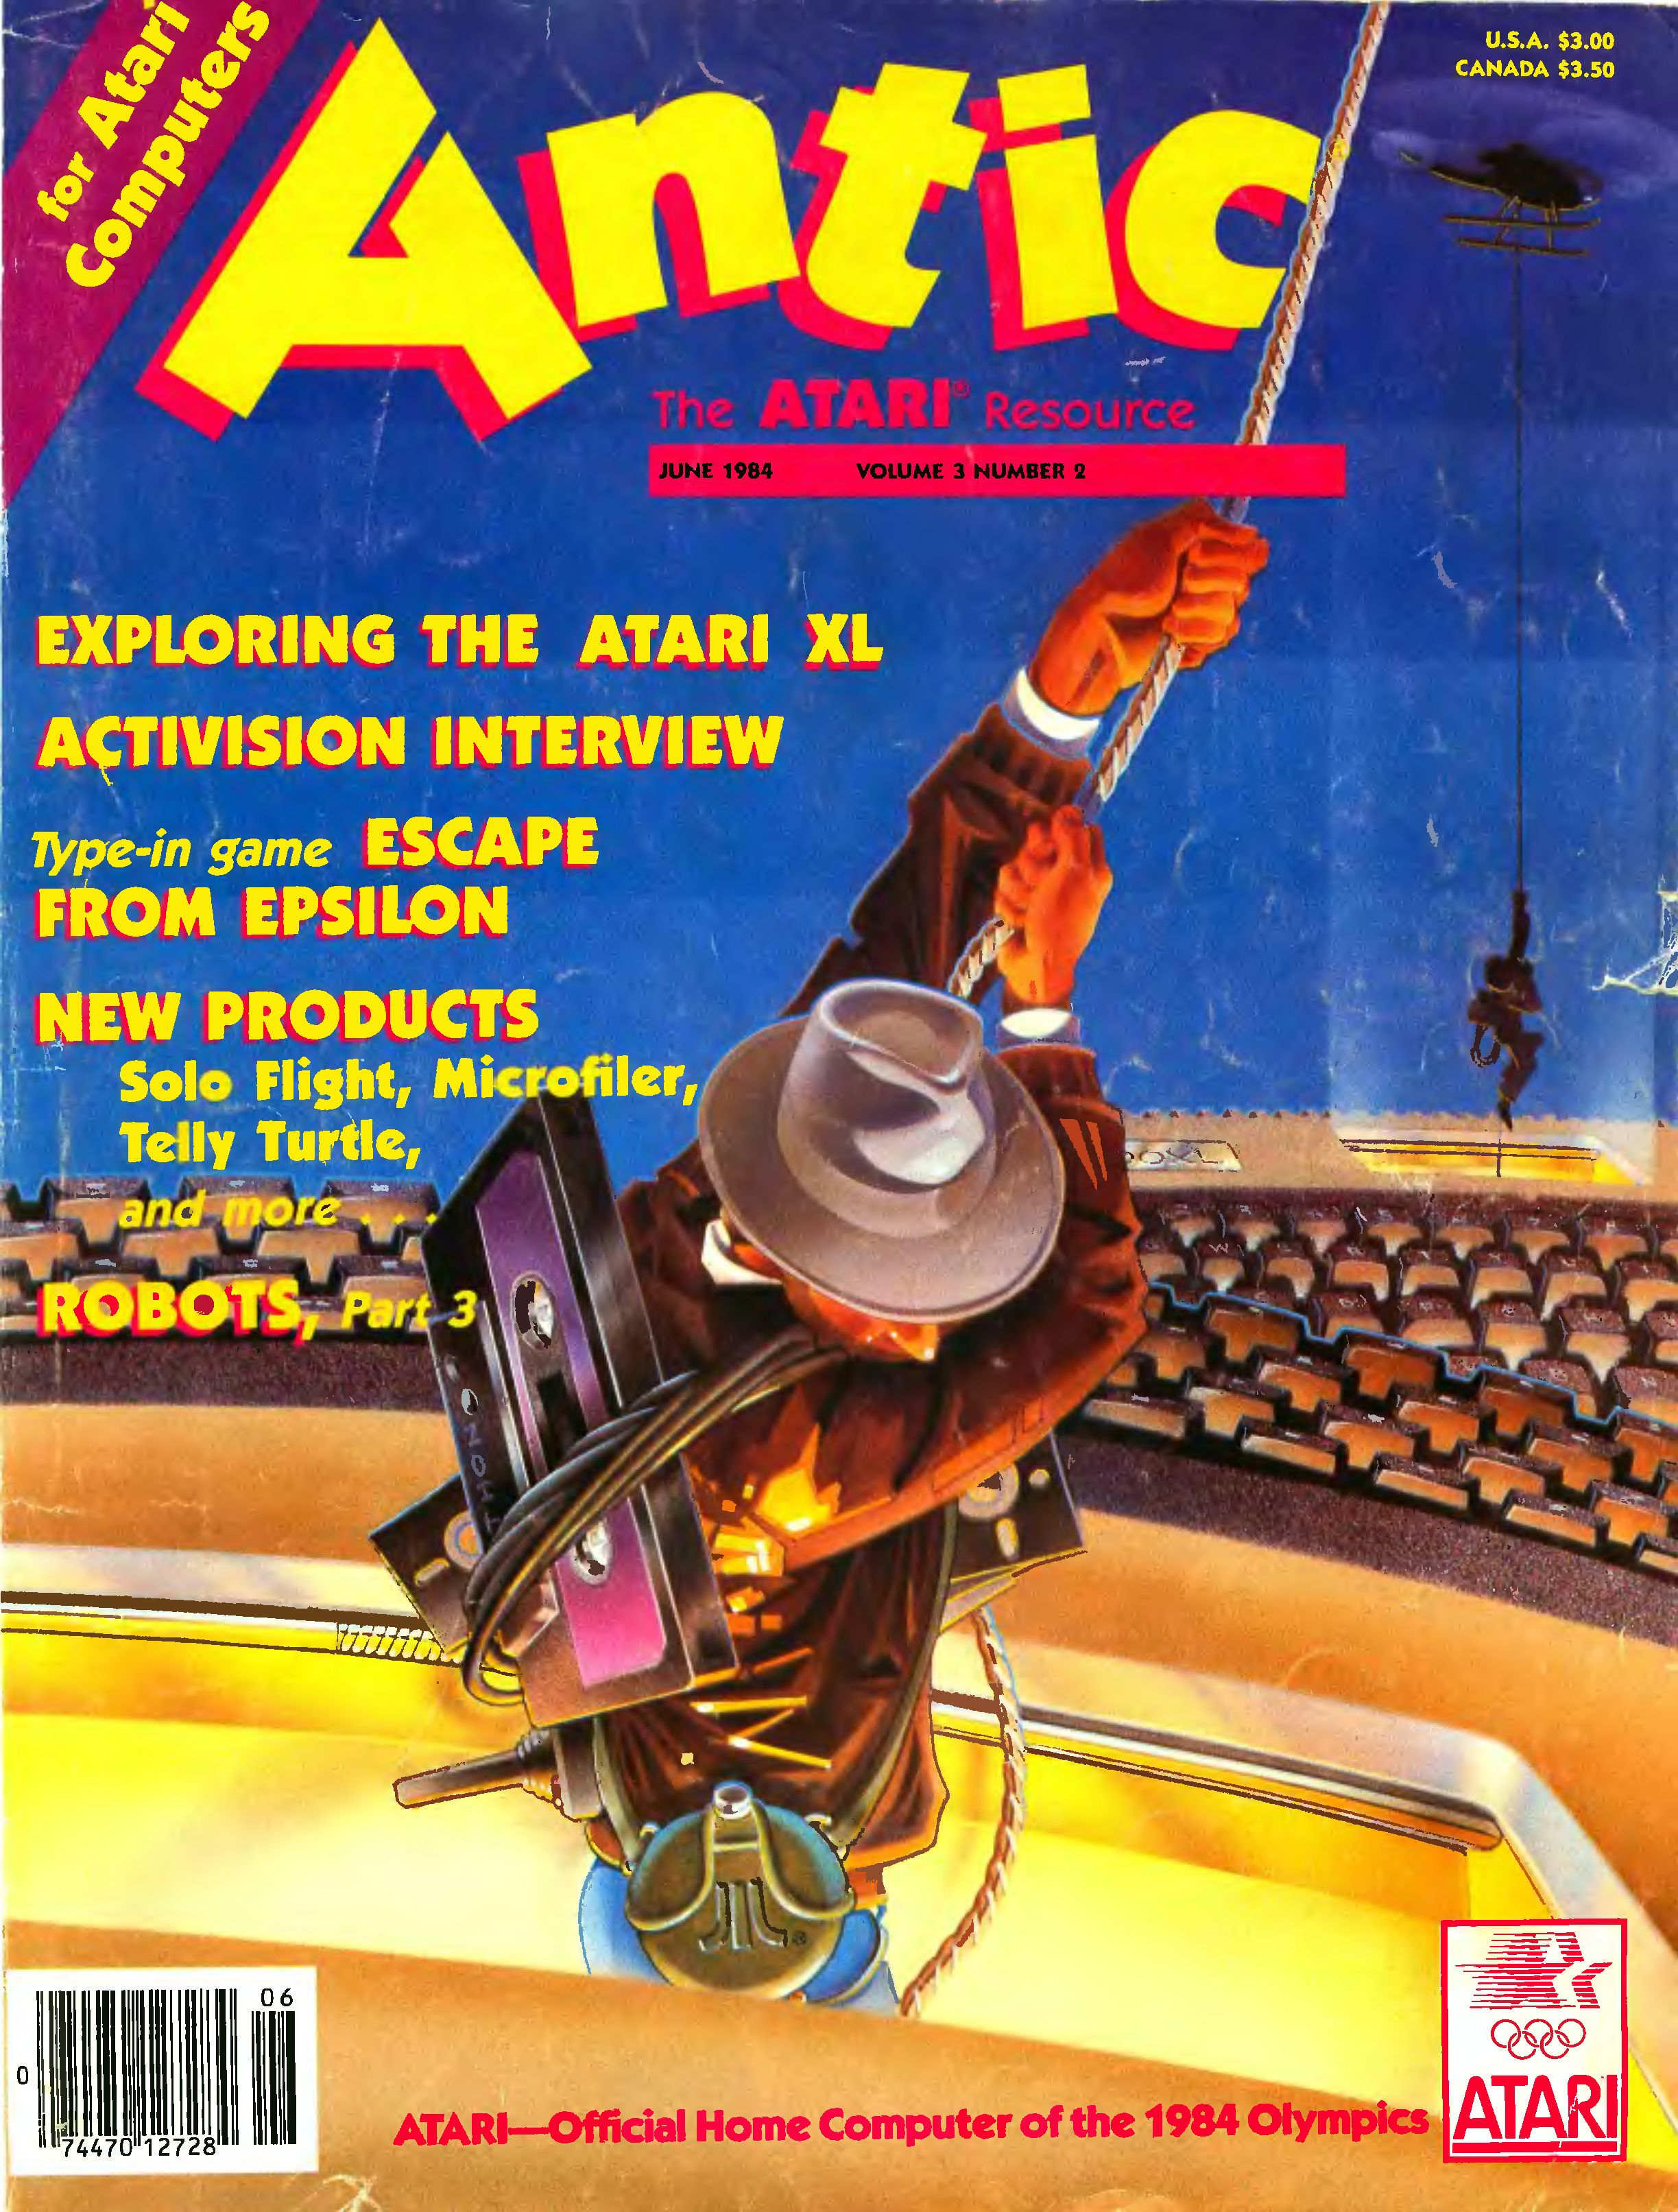 antic_vol_3-02_1984-06_exploring_the_atari_xl_page_0001